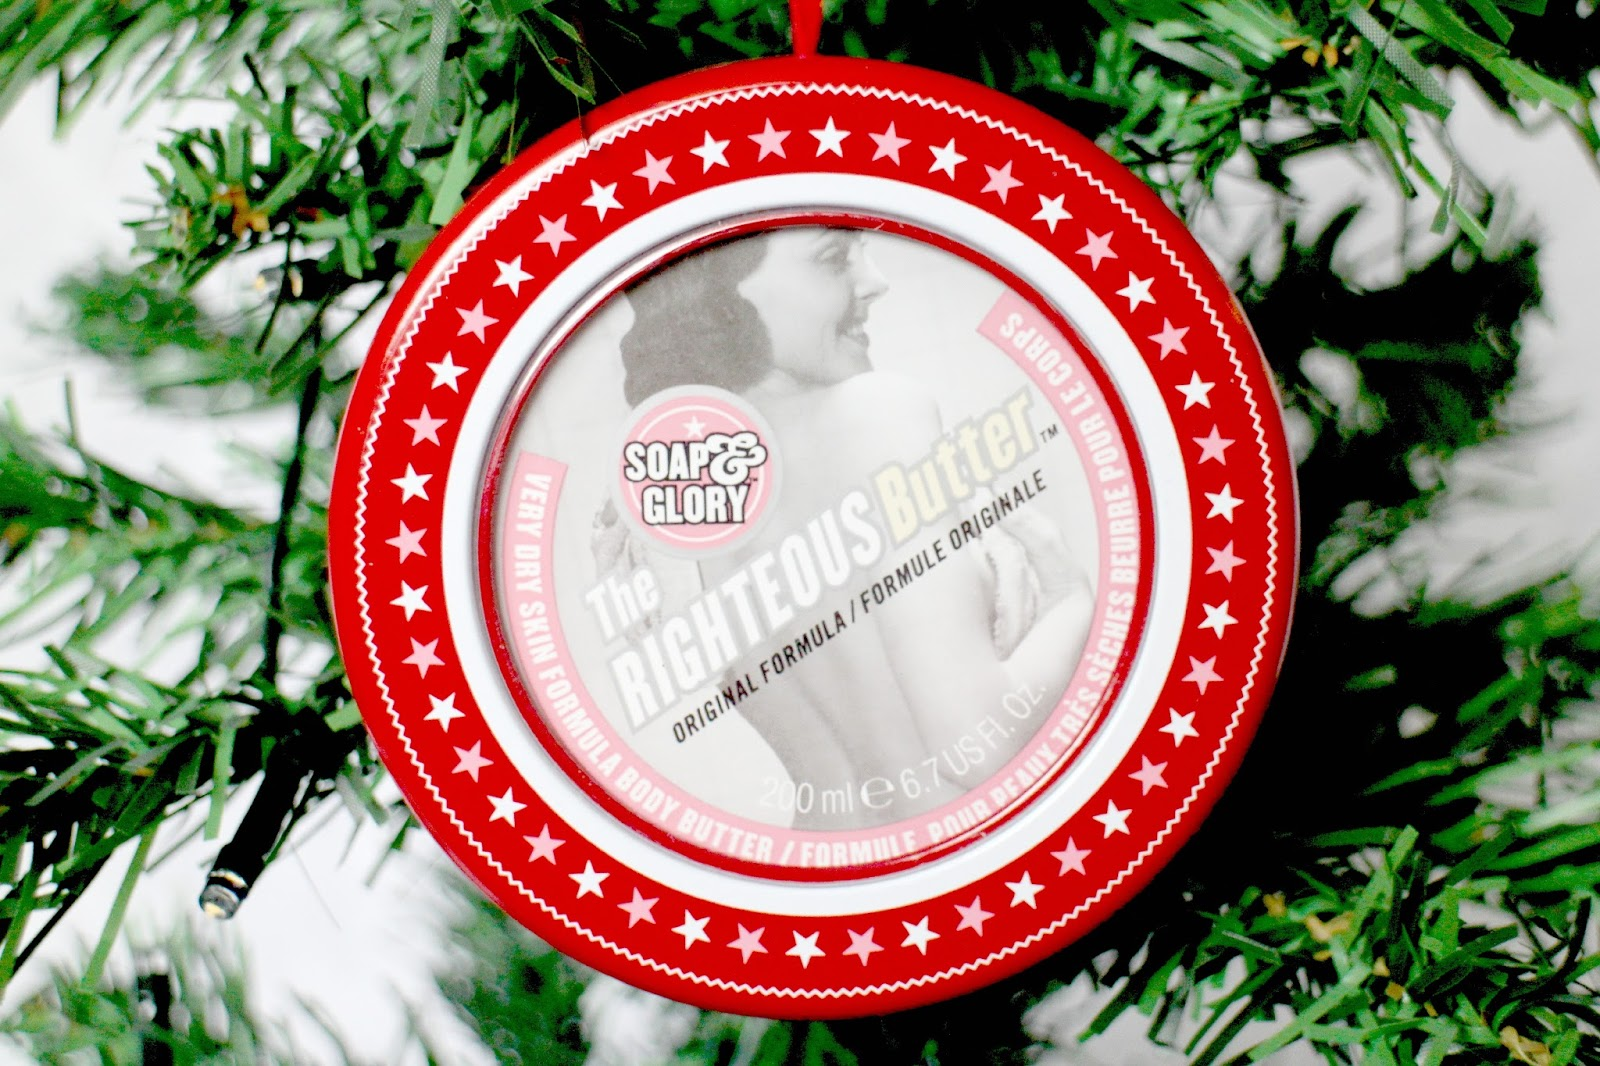 Soap & Glory The Righteous Butter Drum